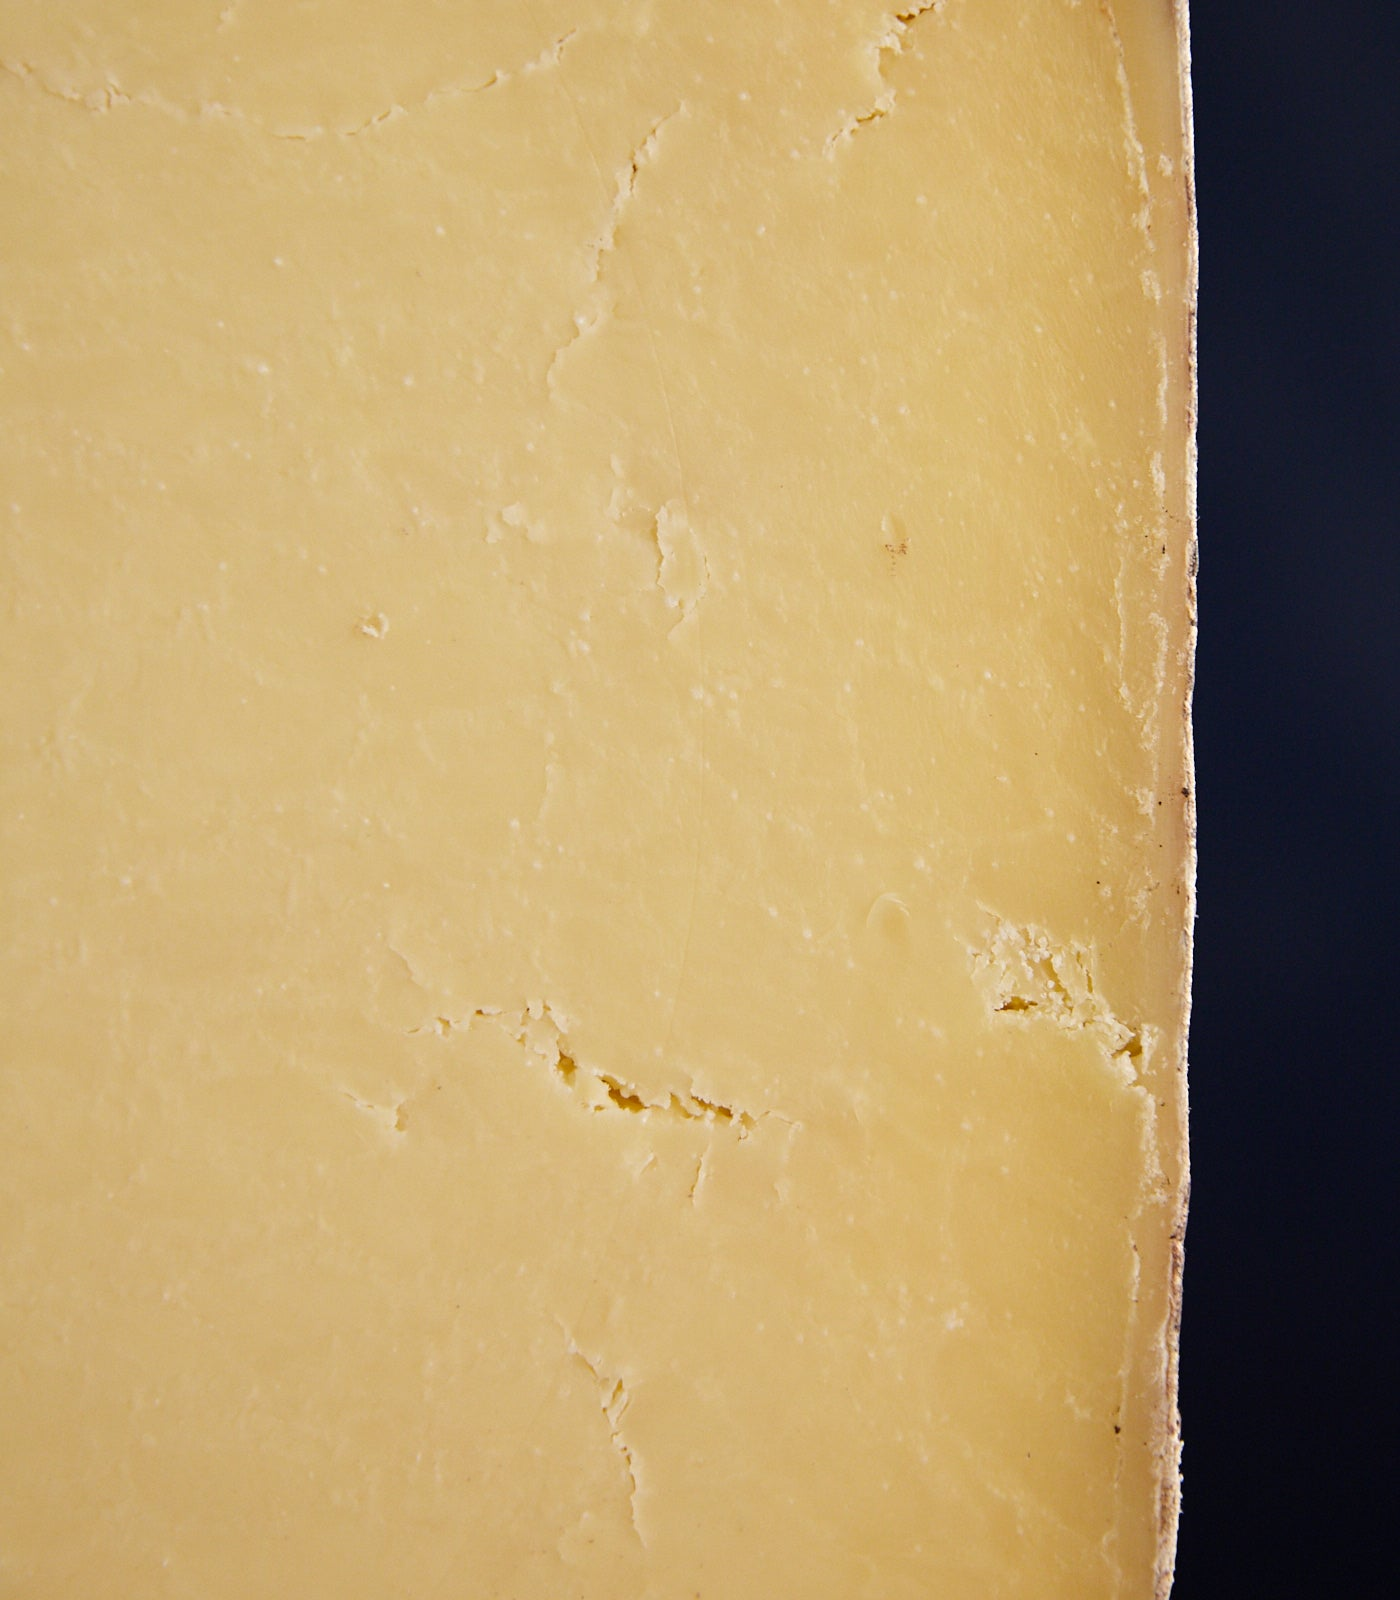 Close up of a cut Montgomery's Cheddar cheese showing the firm but friable paste